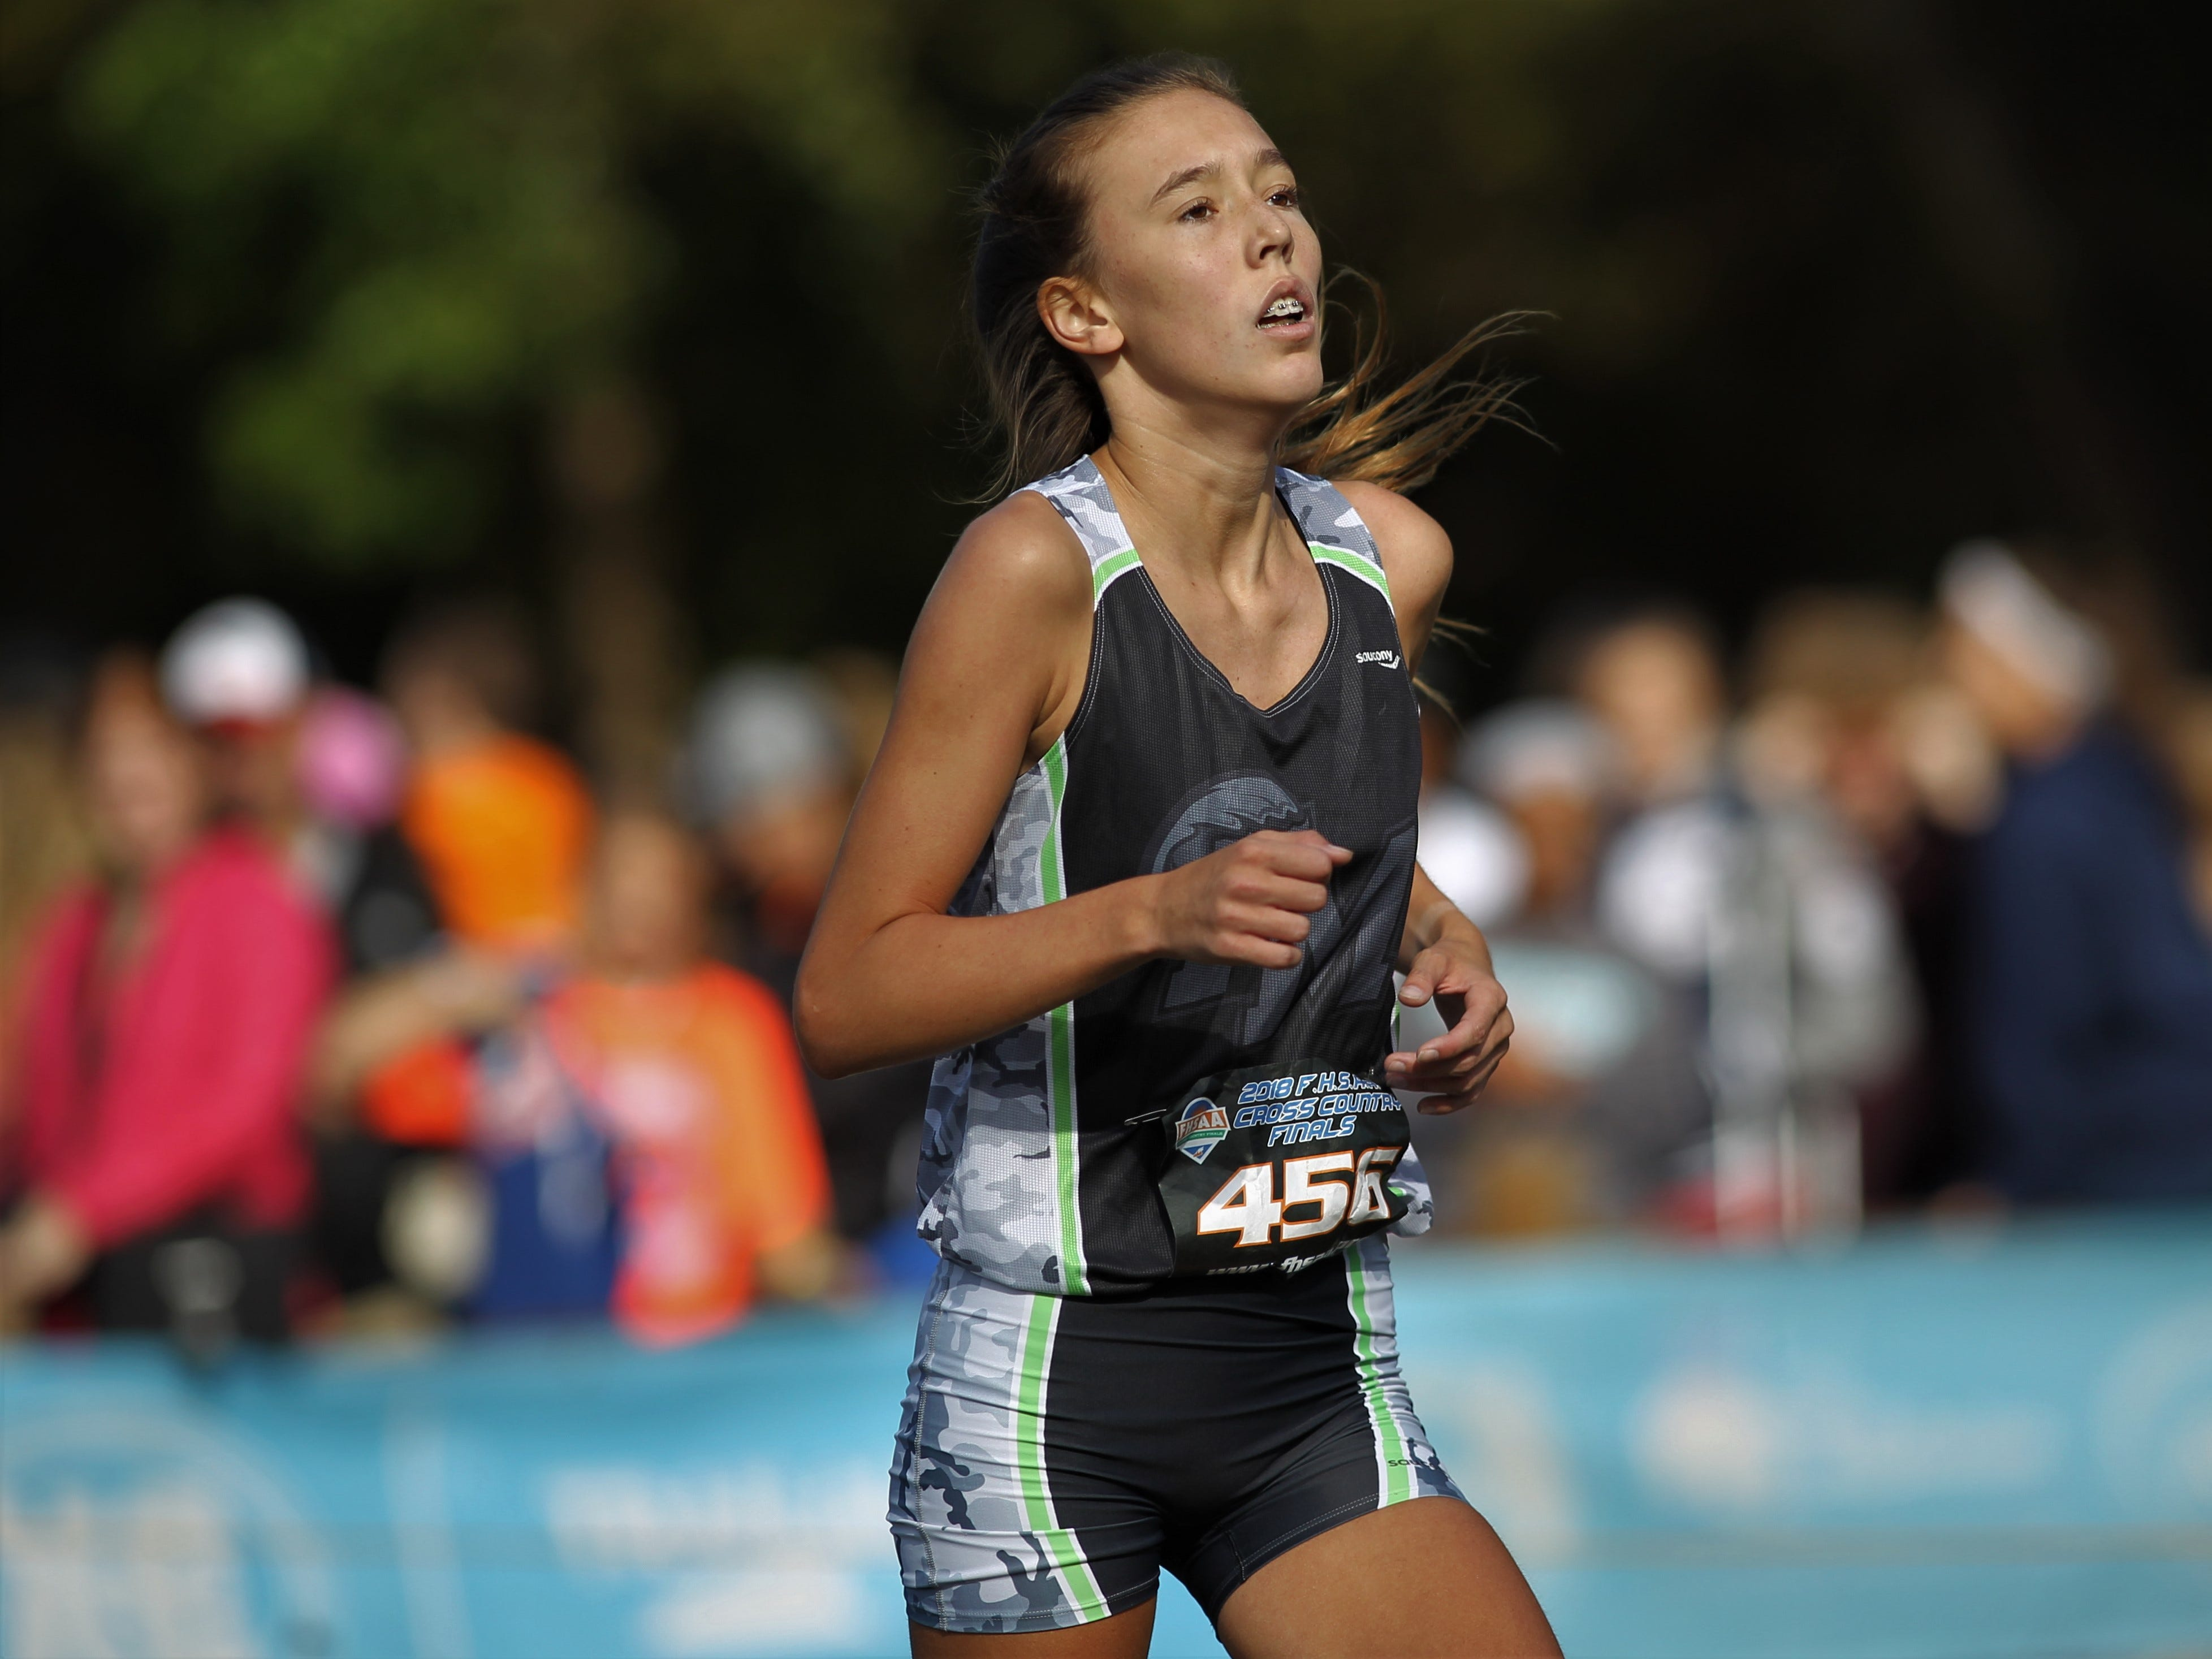 Fort Myers' Sarah Schultz races at the FHSAA Cross Country State Championships at Apalachee Regional Park in Tallahassee, Saturday, Nov. 11, 2018.